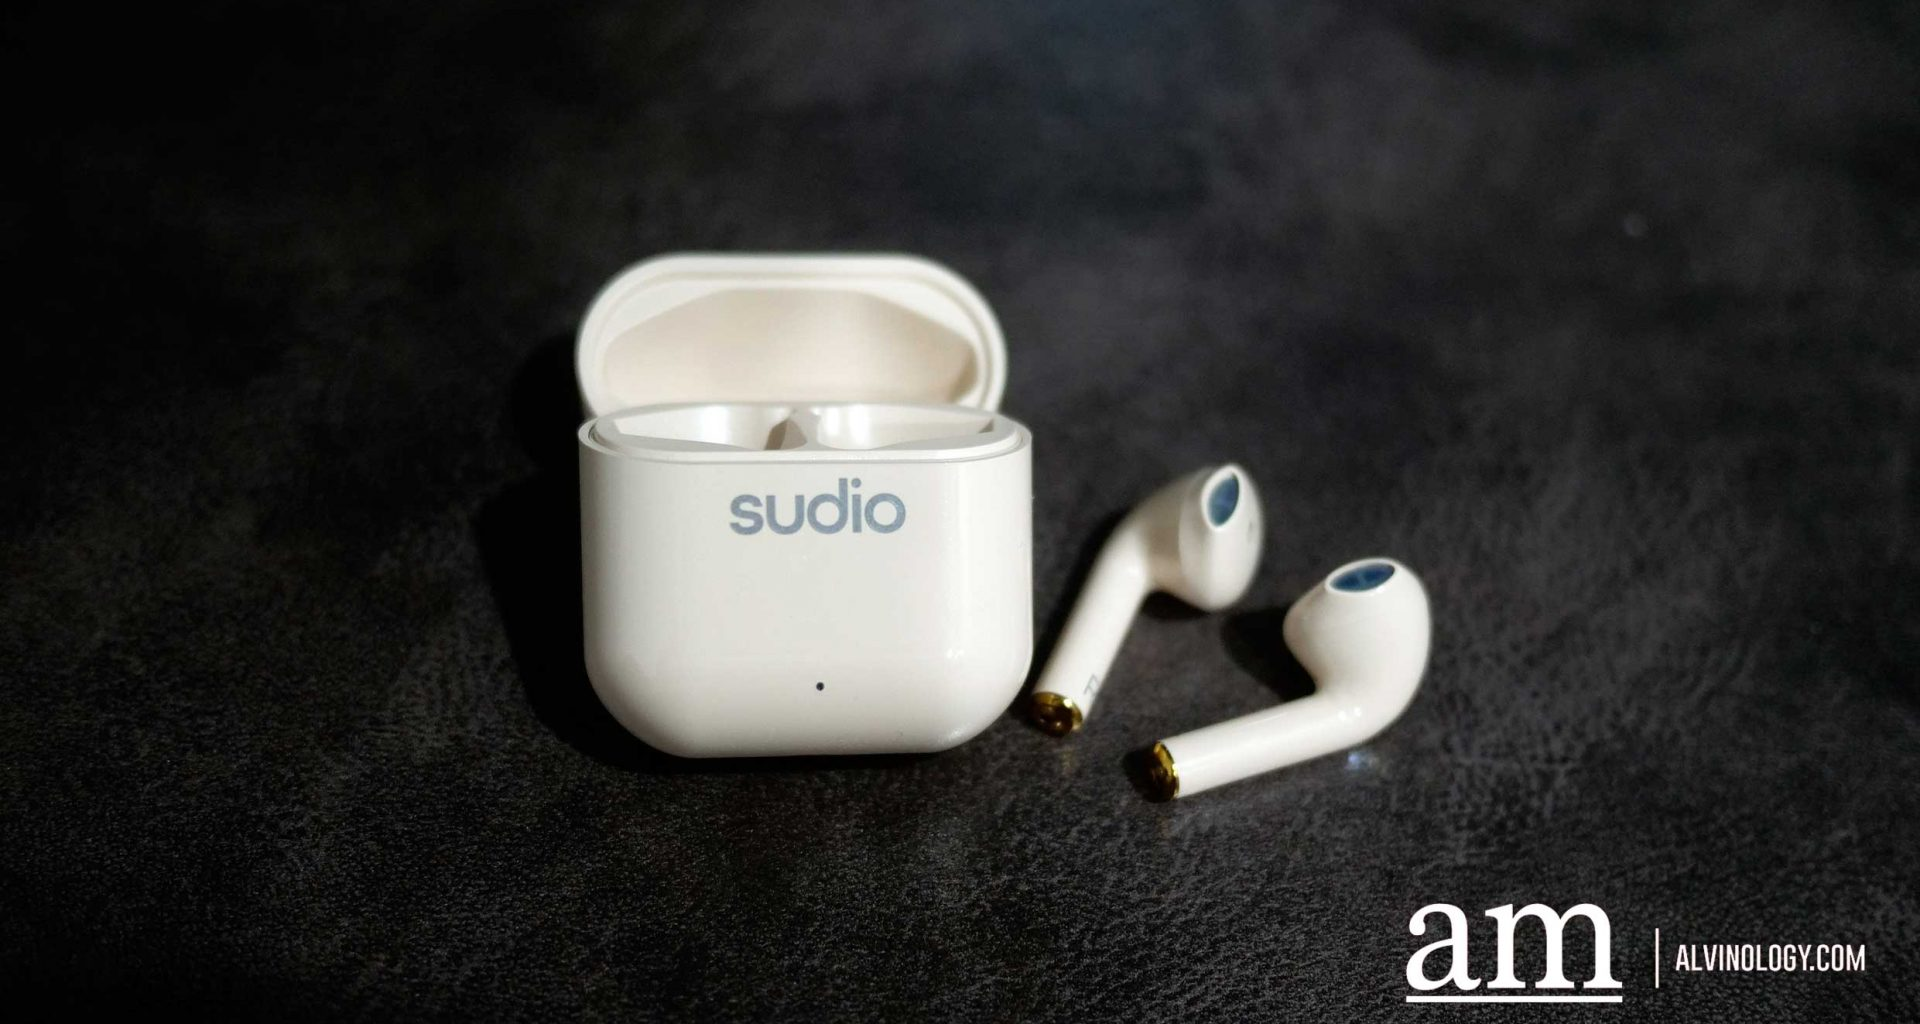 [15% off Promo Code + Giveaway] Sudio Nio Wireless Earphones for the Niu Year - Alvinology